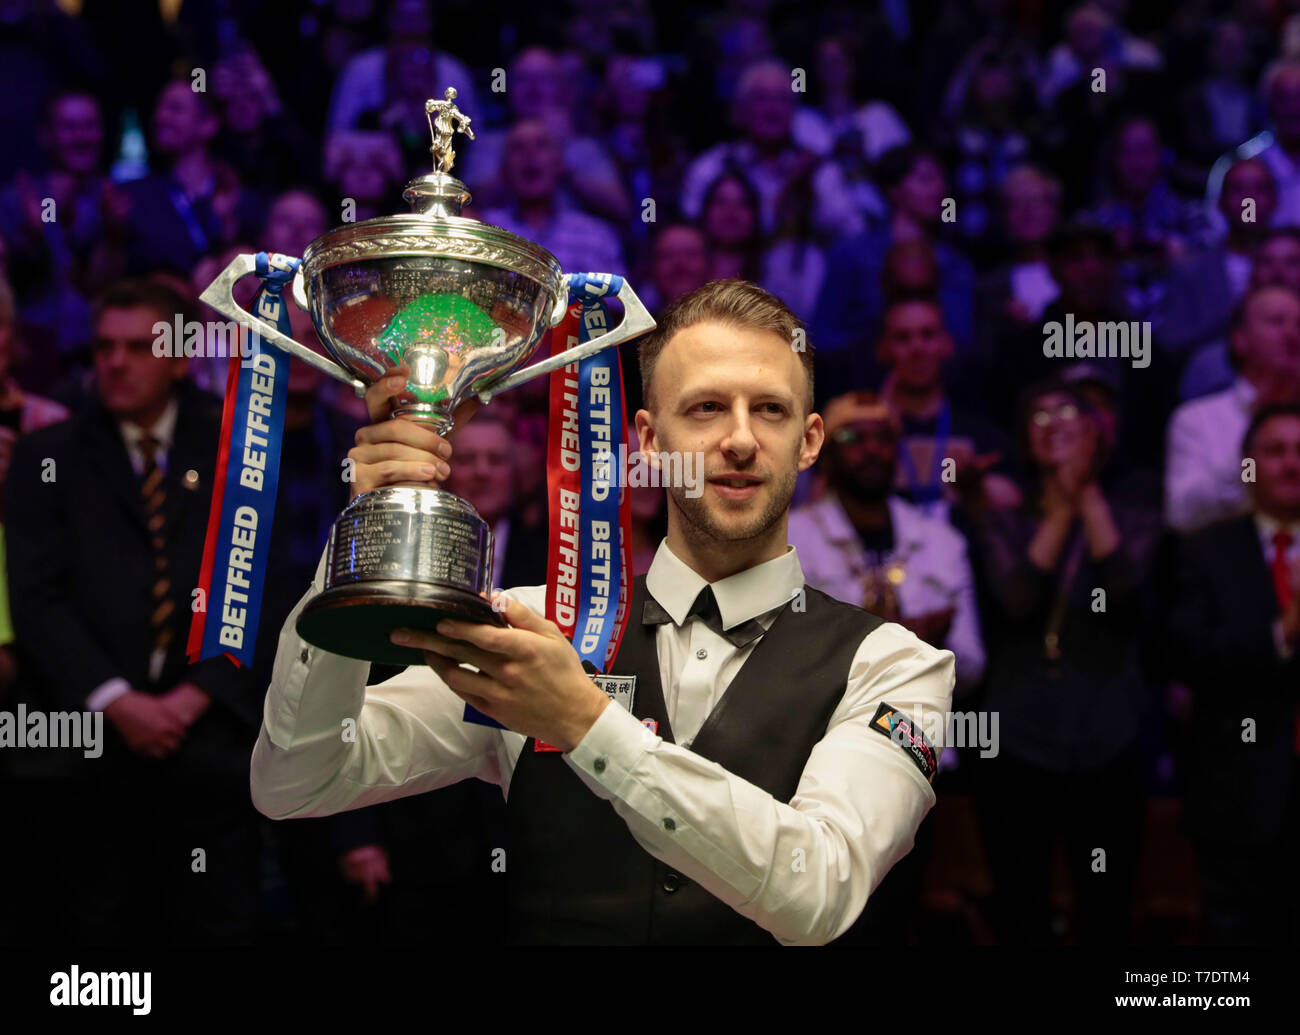 Snooker World Championship Trophy Stock Photos & Snooker World ...